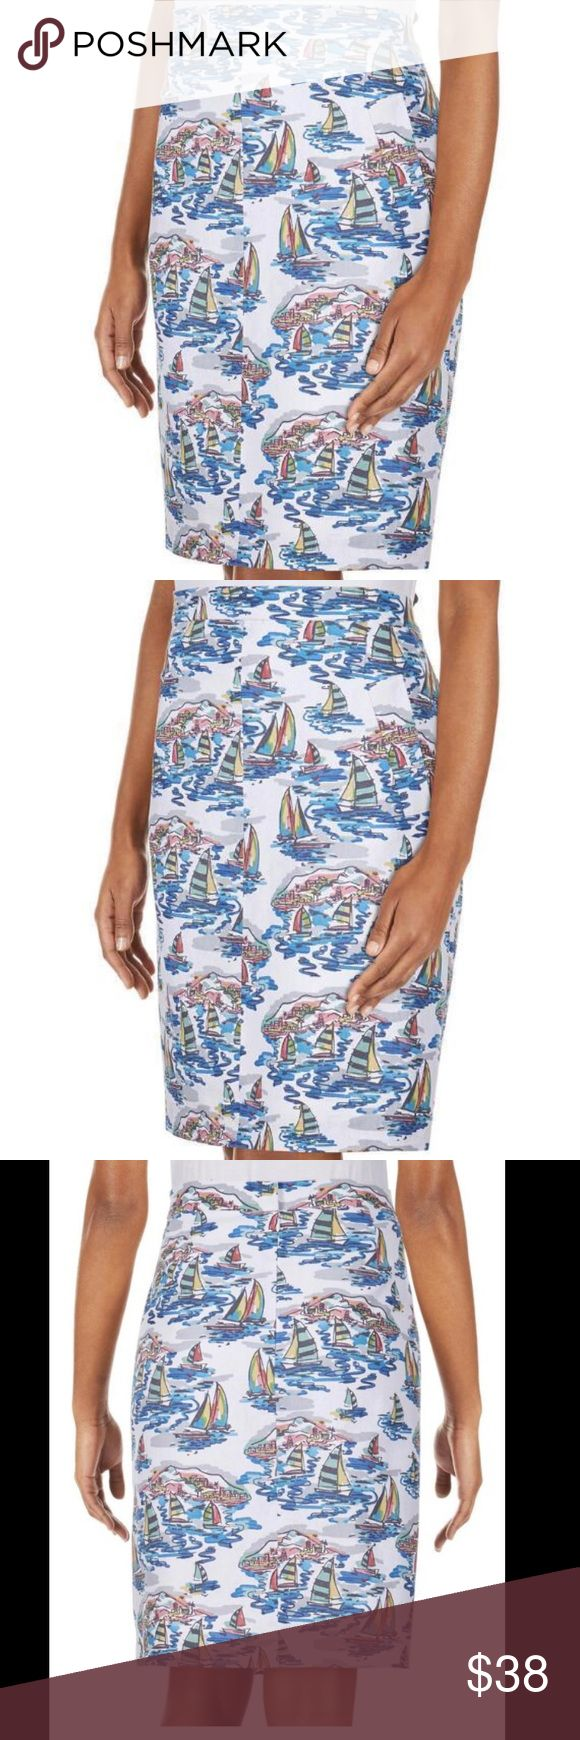 ⛵️NWT NINE WEST⛵️SAILBOAT PRINTED SKIRT⛵️ NWT woven linen cotton construction styled in a preppy sailboat print feels totally chic for summer. This totally chic pencil skirt by Nine West. It's fully lined and finished with two front 😍pockets😍 and back hidden zipper with two eye and hook closures. 53% linen 47% cotton lining 100% acetate. Nine west calls this Skirt  sweet escape Havana multi. Measured flat waist 15 1/2 inches hips 19 inches length 23 inches Nine West Skirts Midi